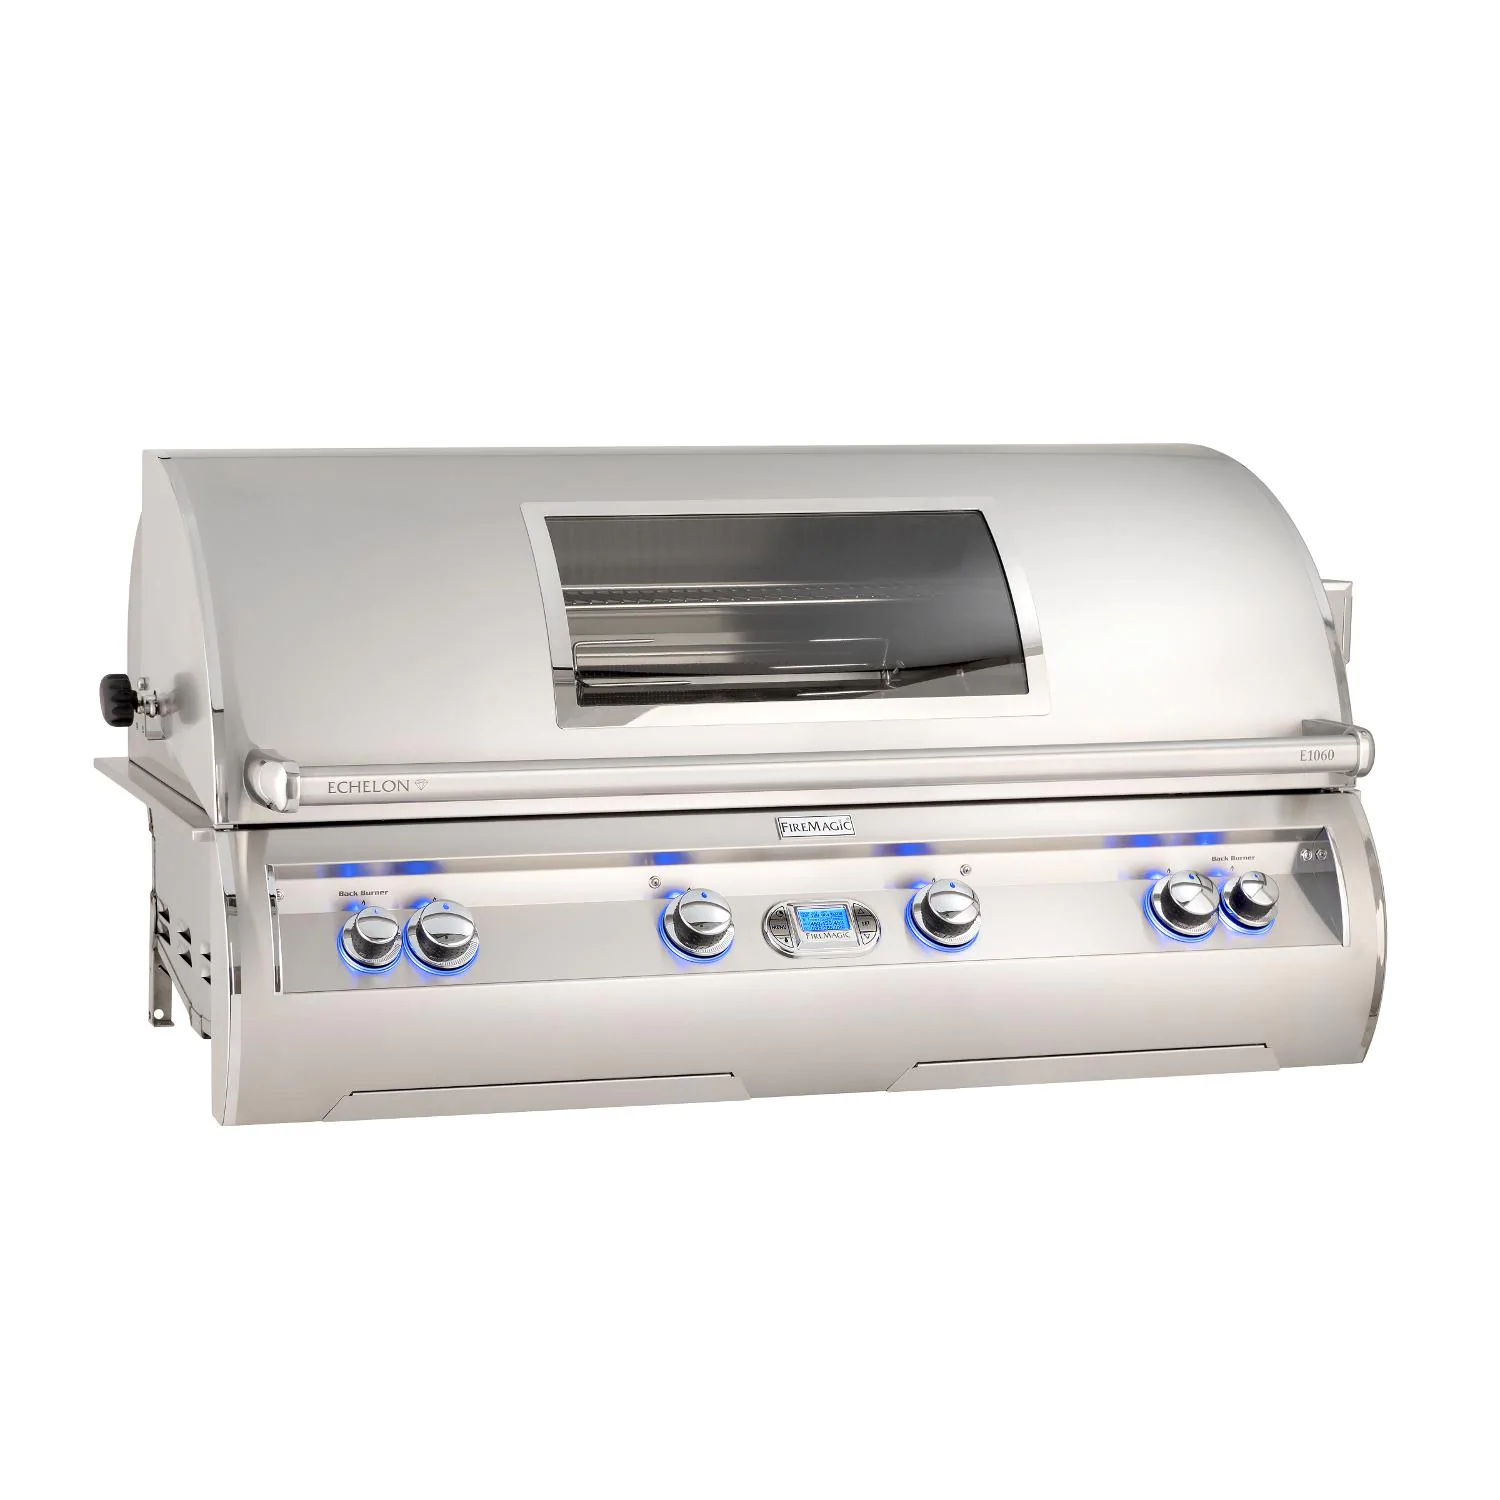 """Fire Magic E1060I-8E1N-W Echelon Diamond E1060I 48"""" Built In Natural Gas Grill  With Rotisserie And Digital Thermometer"""